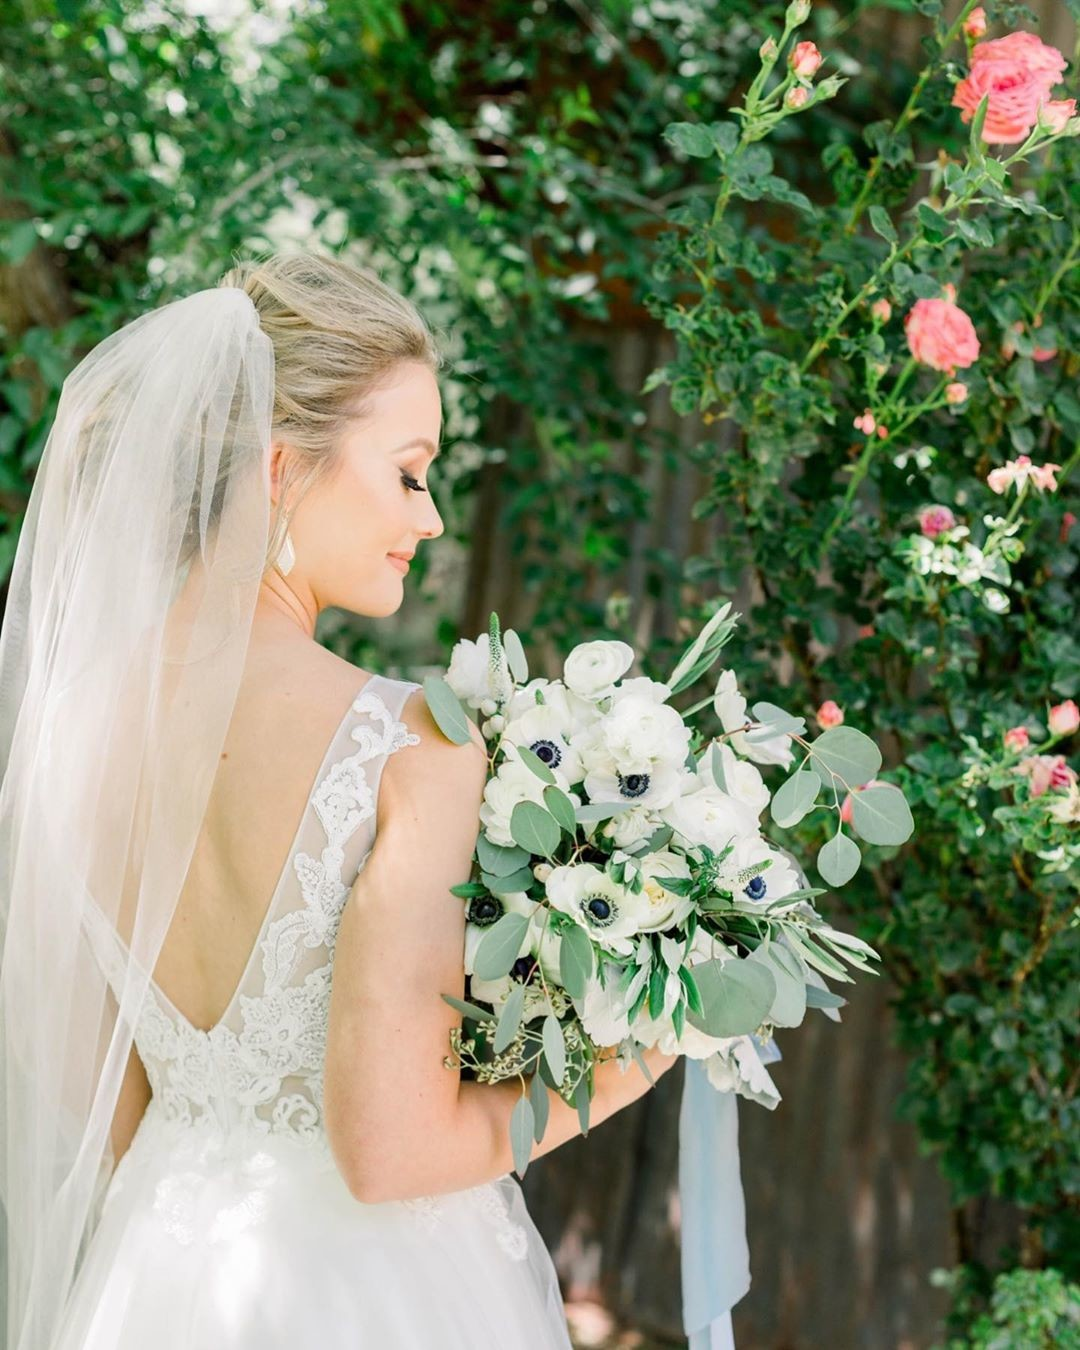 Beautiful bride among greenery